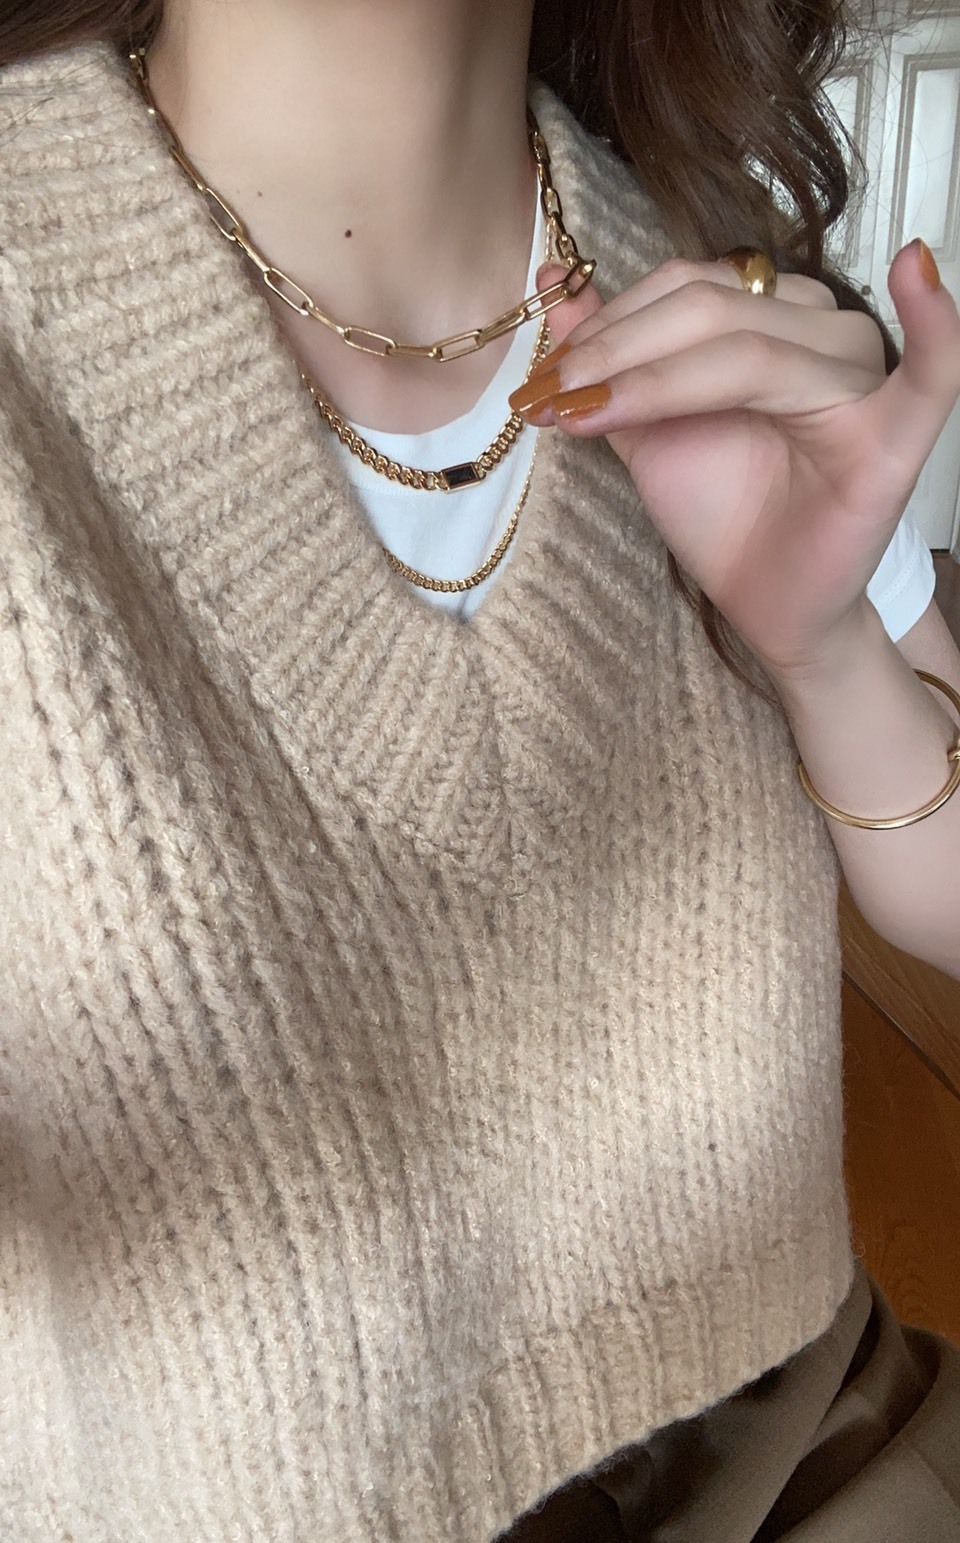 DAYNYC double chain necklace